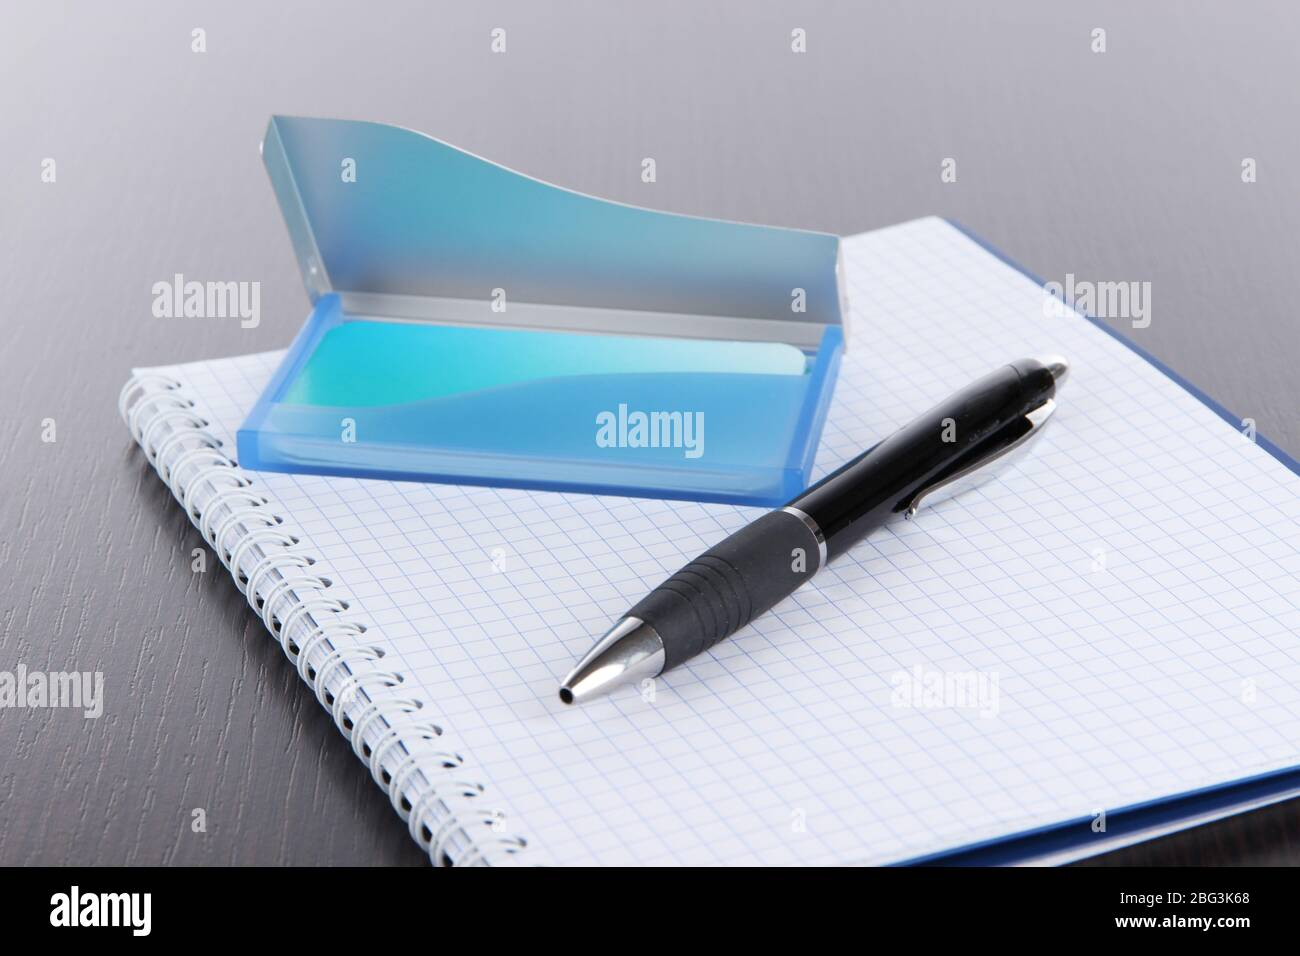 Blue business card holder, notebook and pen close-up Stock Photo